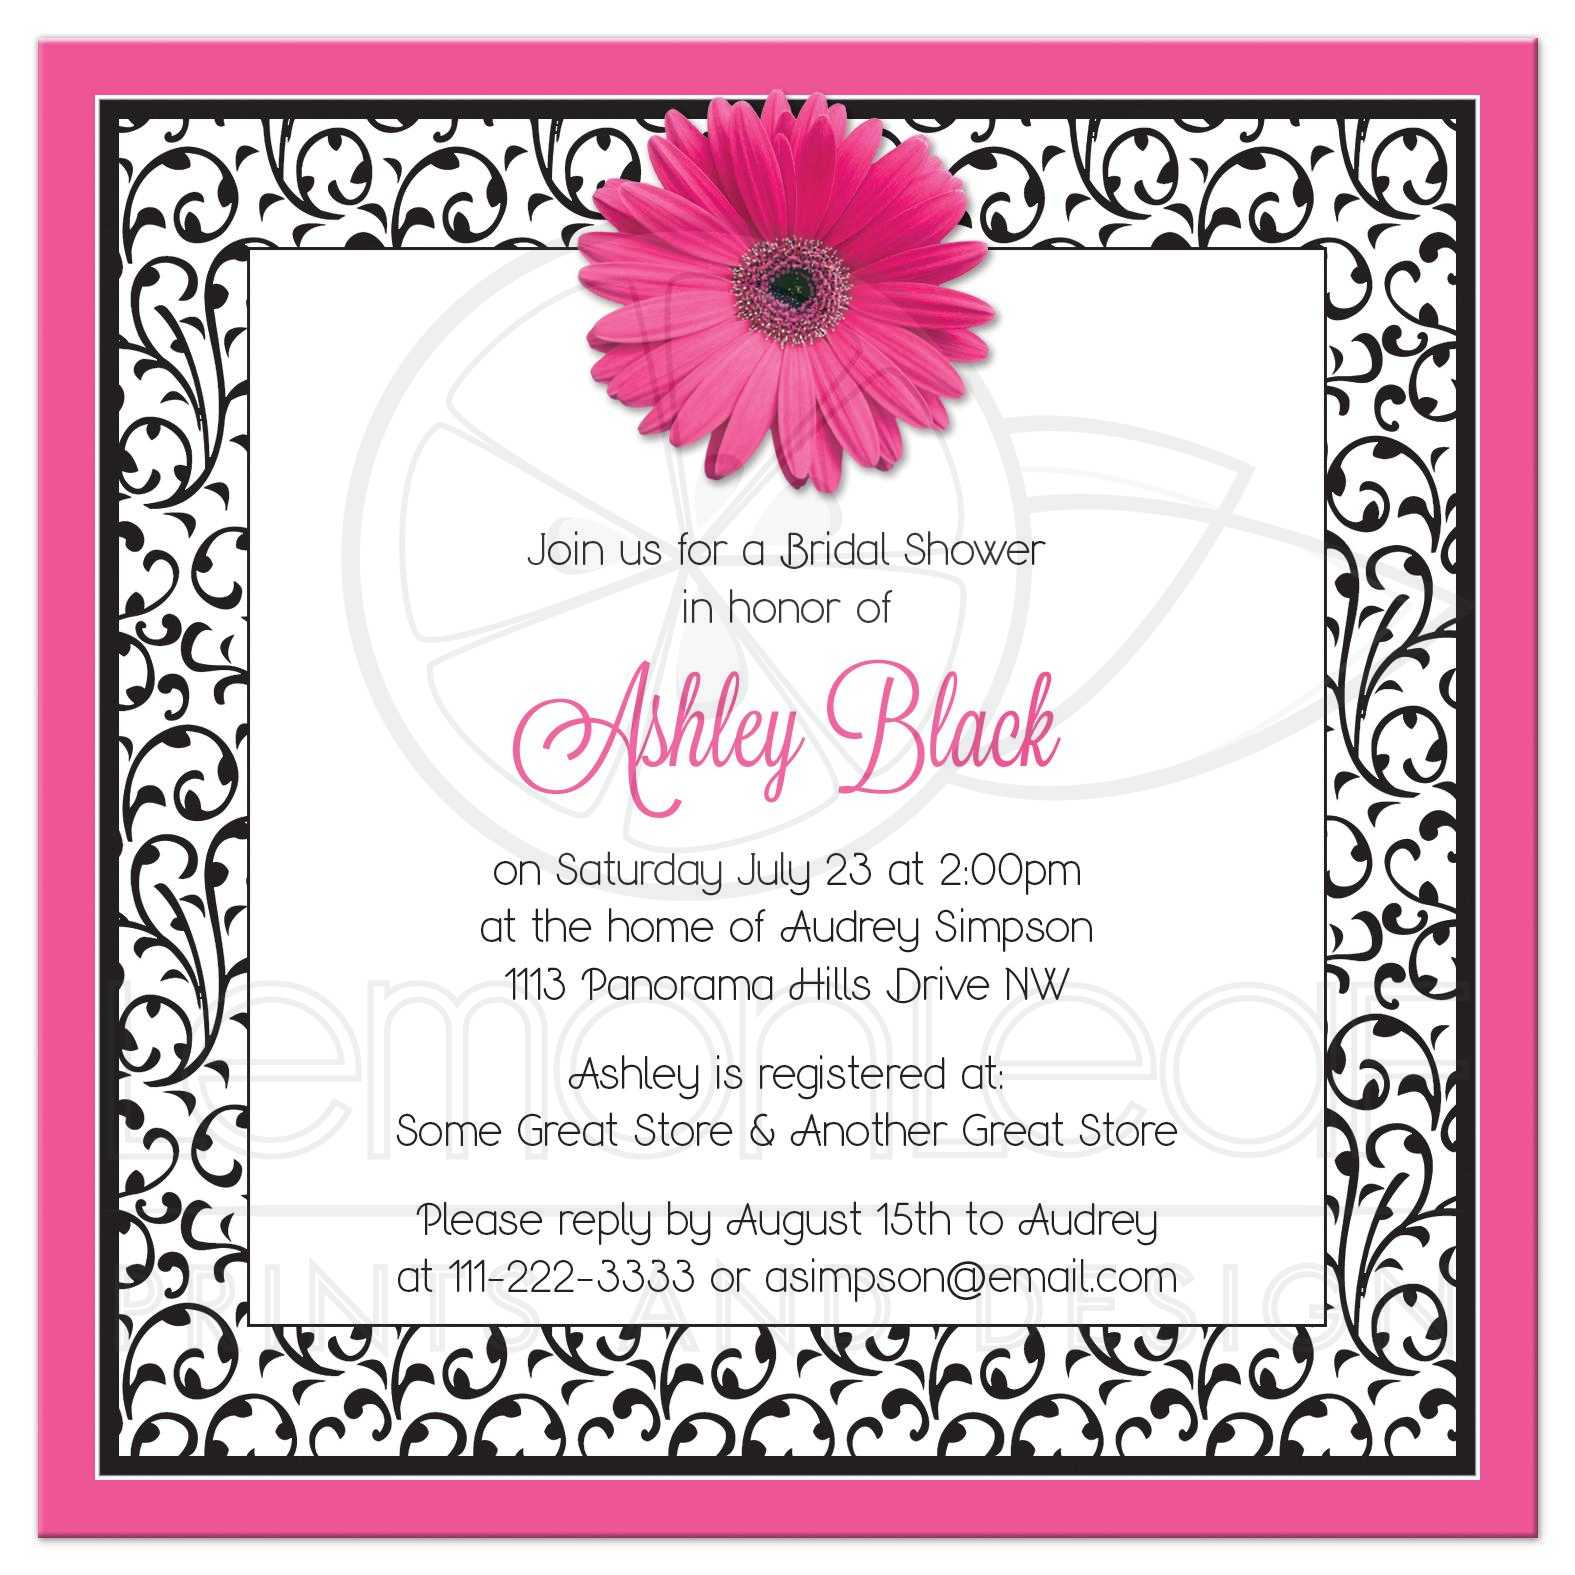 black and white floral gerber daisy flower bridal shower invitation back